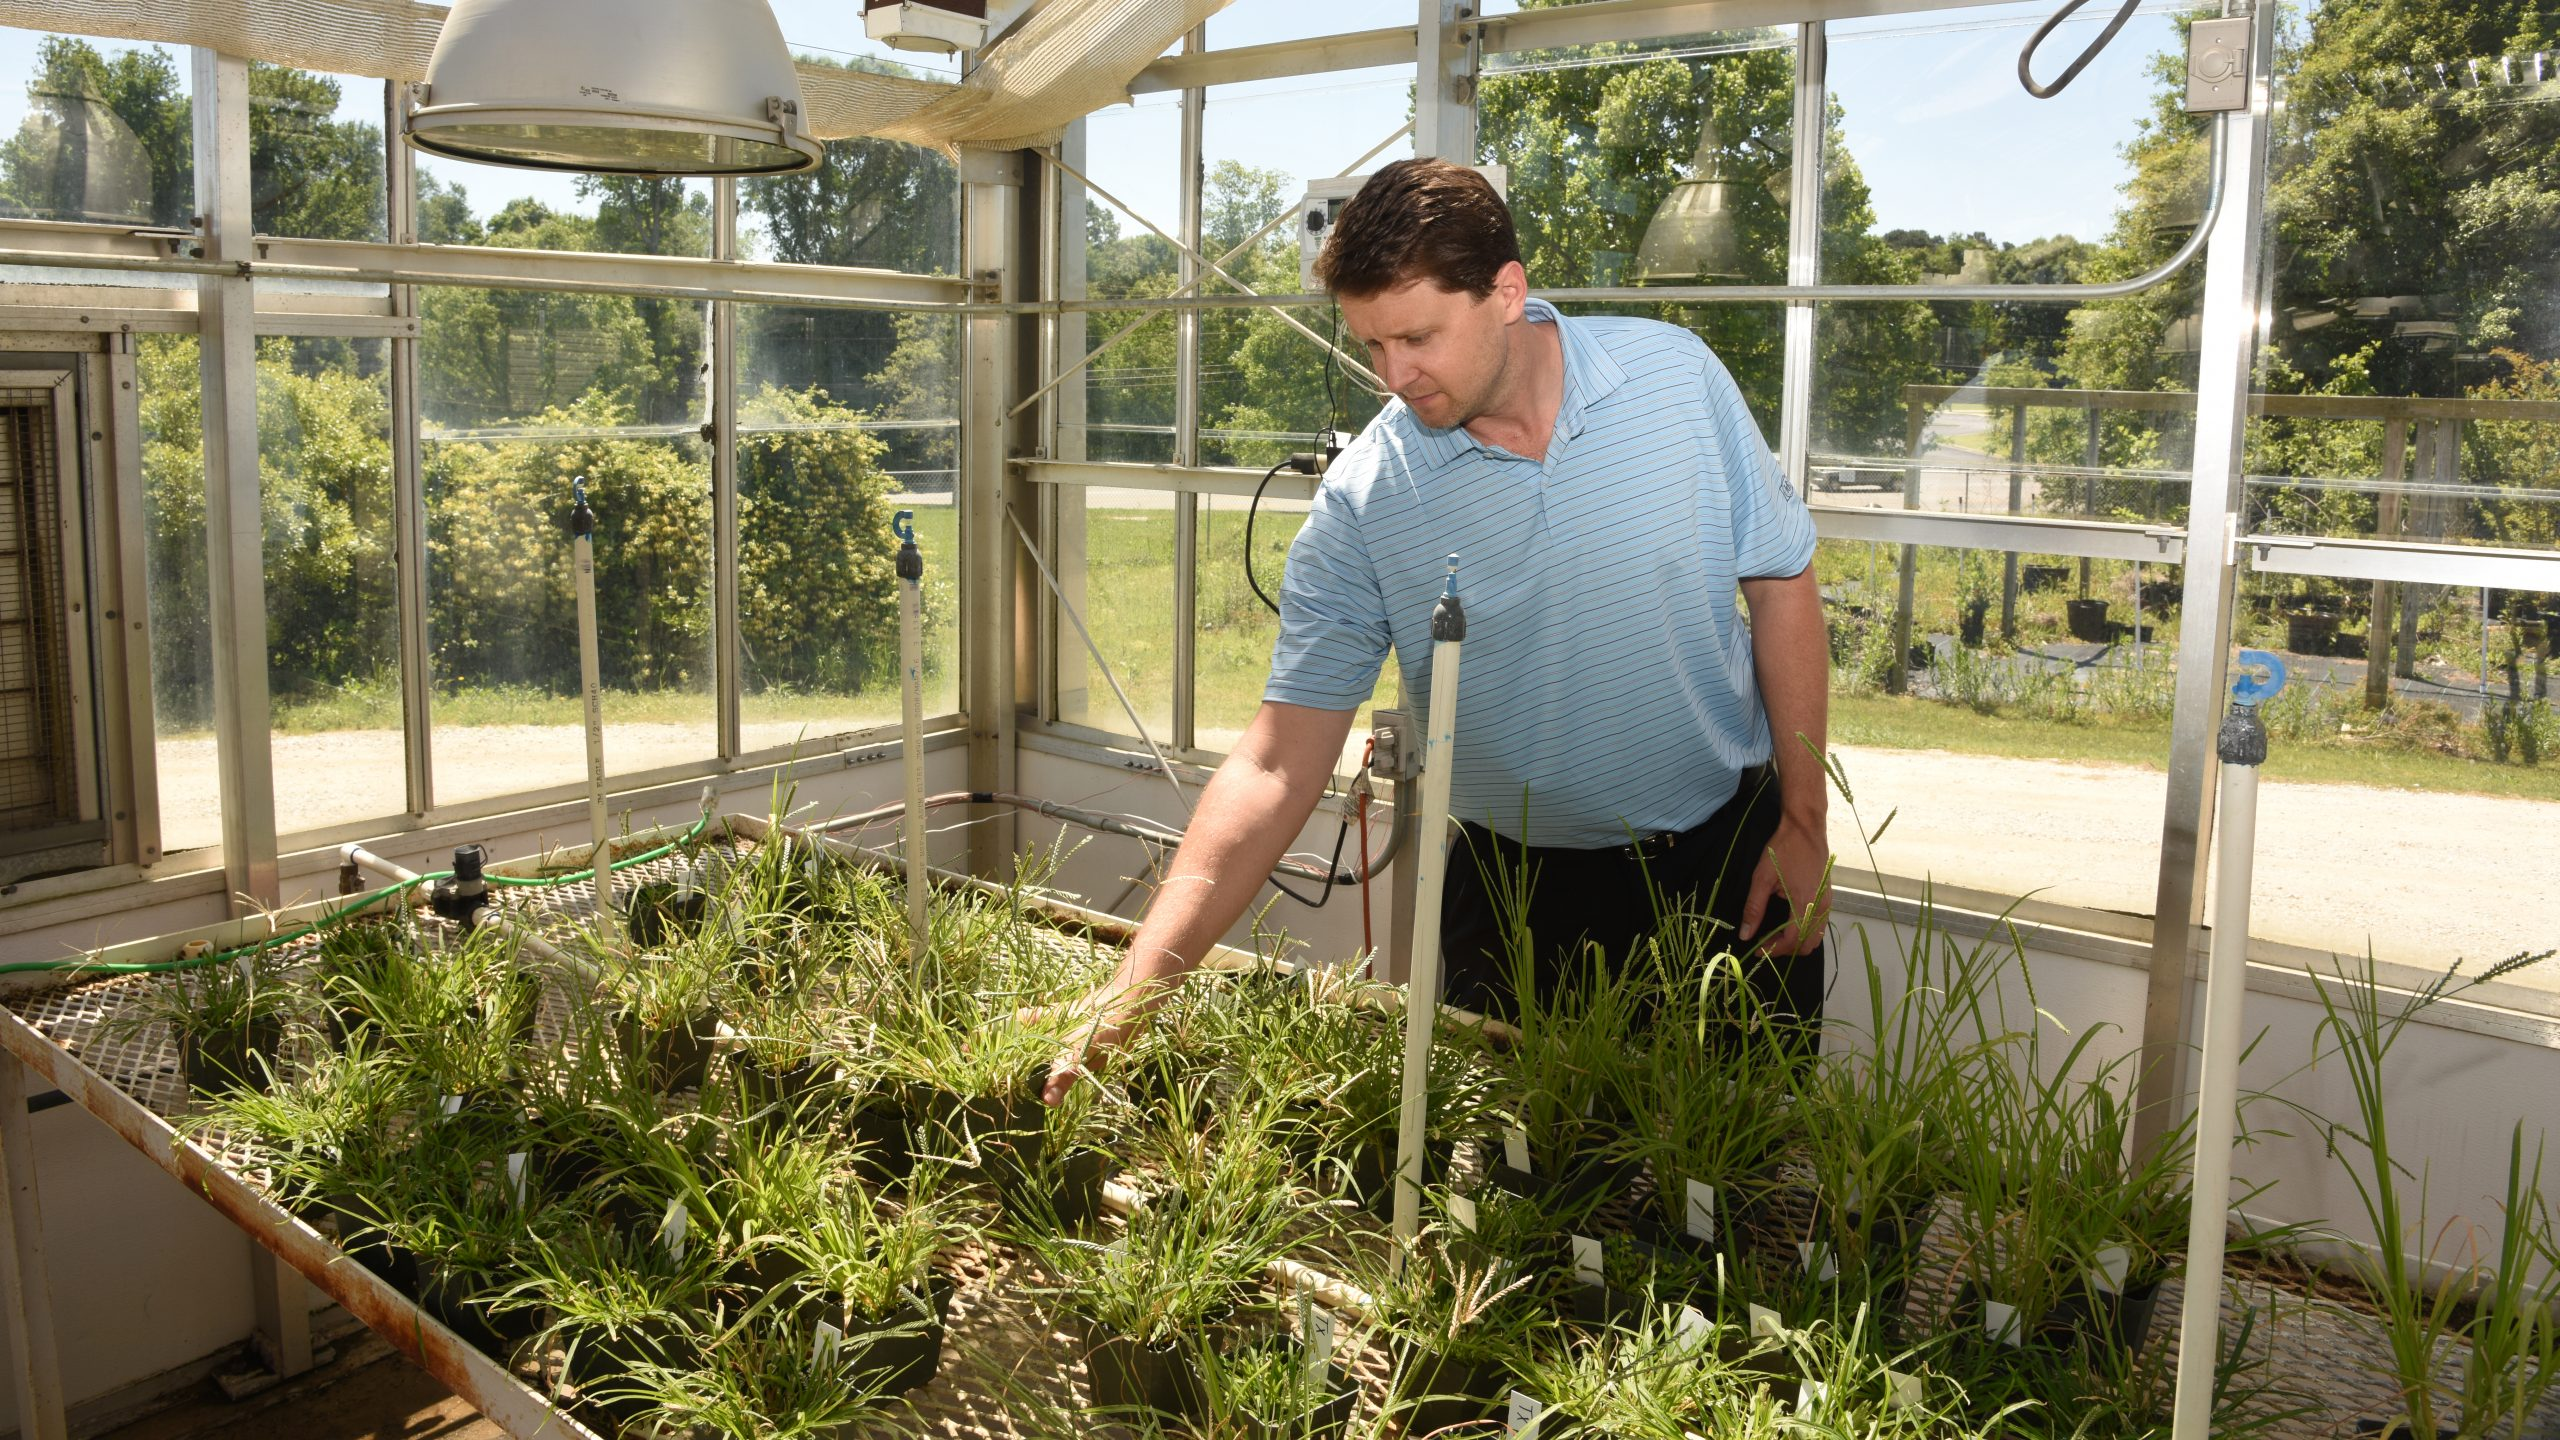 Scott McElroy tends to a plant in a greenhouse